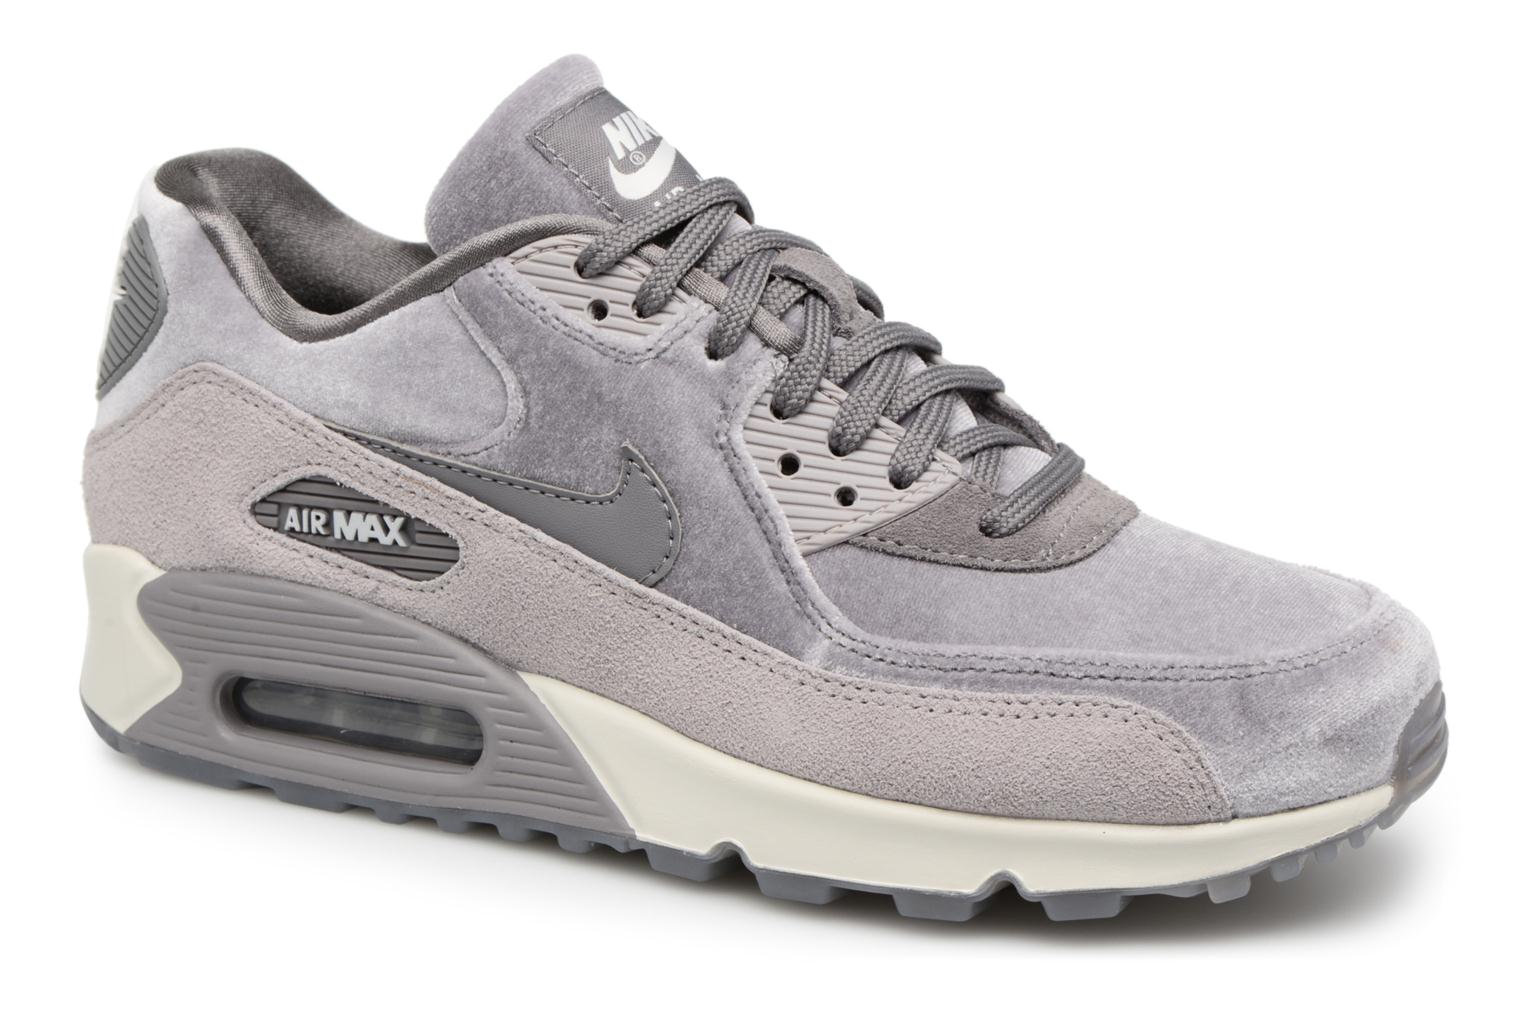 Air Max 95 W Lx Nike Chaussures Gris Rose 1p9ODWuf